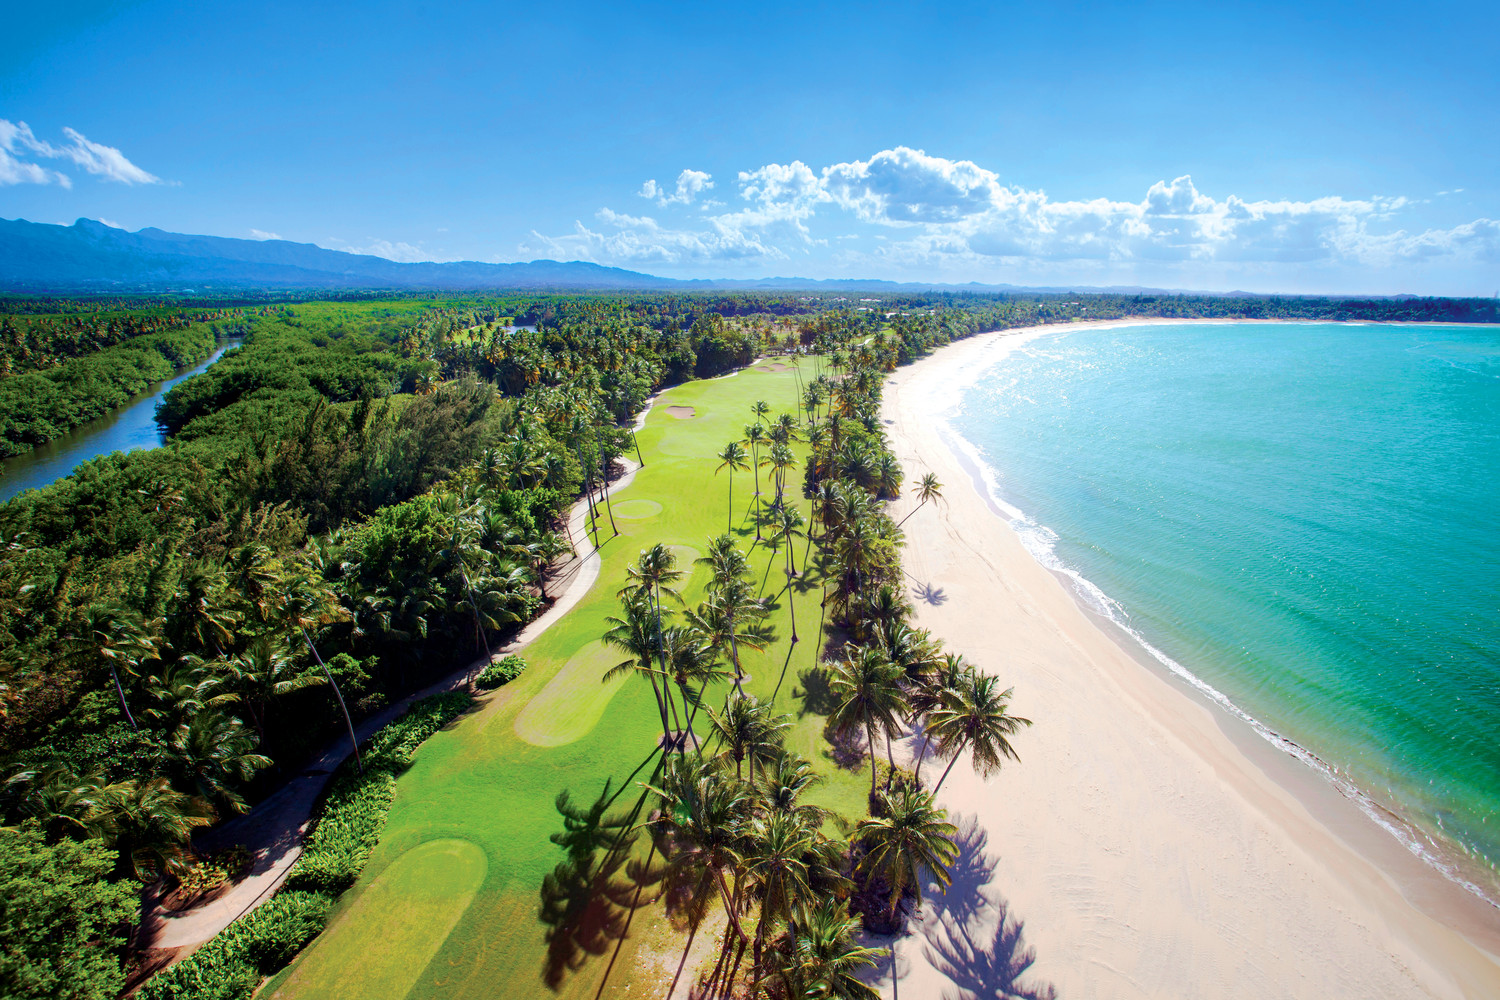 St. Regis Bahia Beach Resort beach